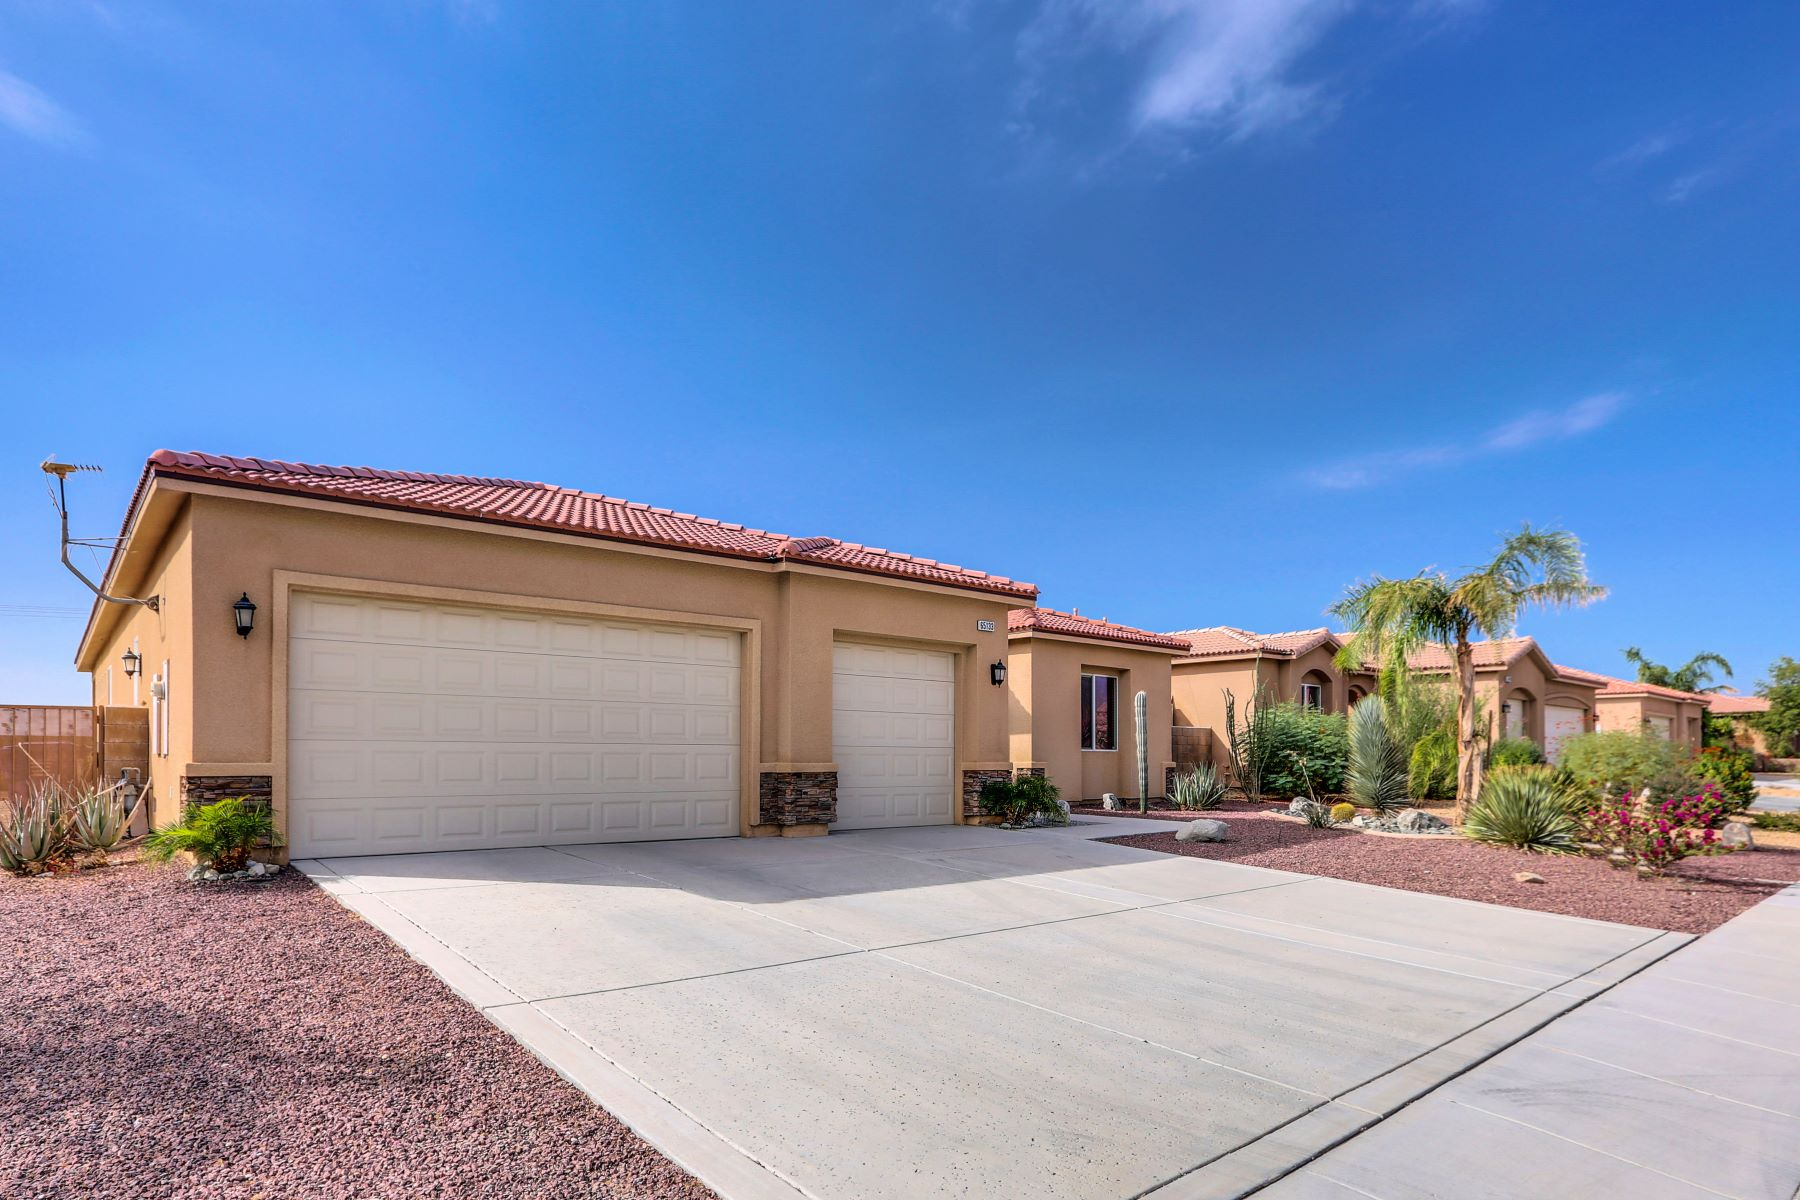 Single Family Homes for Sale at 65133 Rolling Hills Drive Desert Hot Springs, California 92240 United States